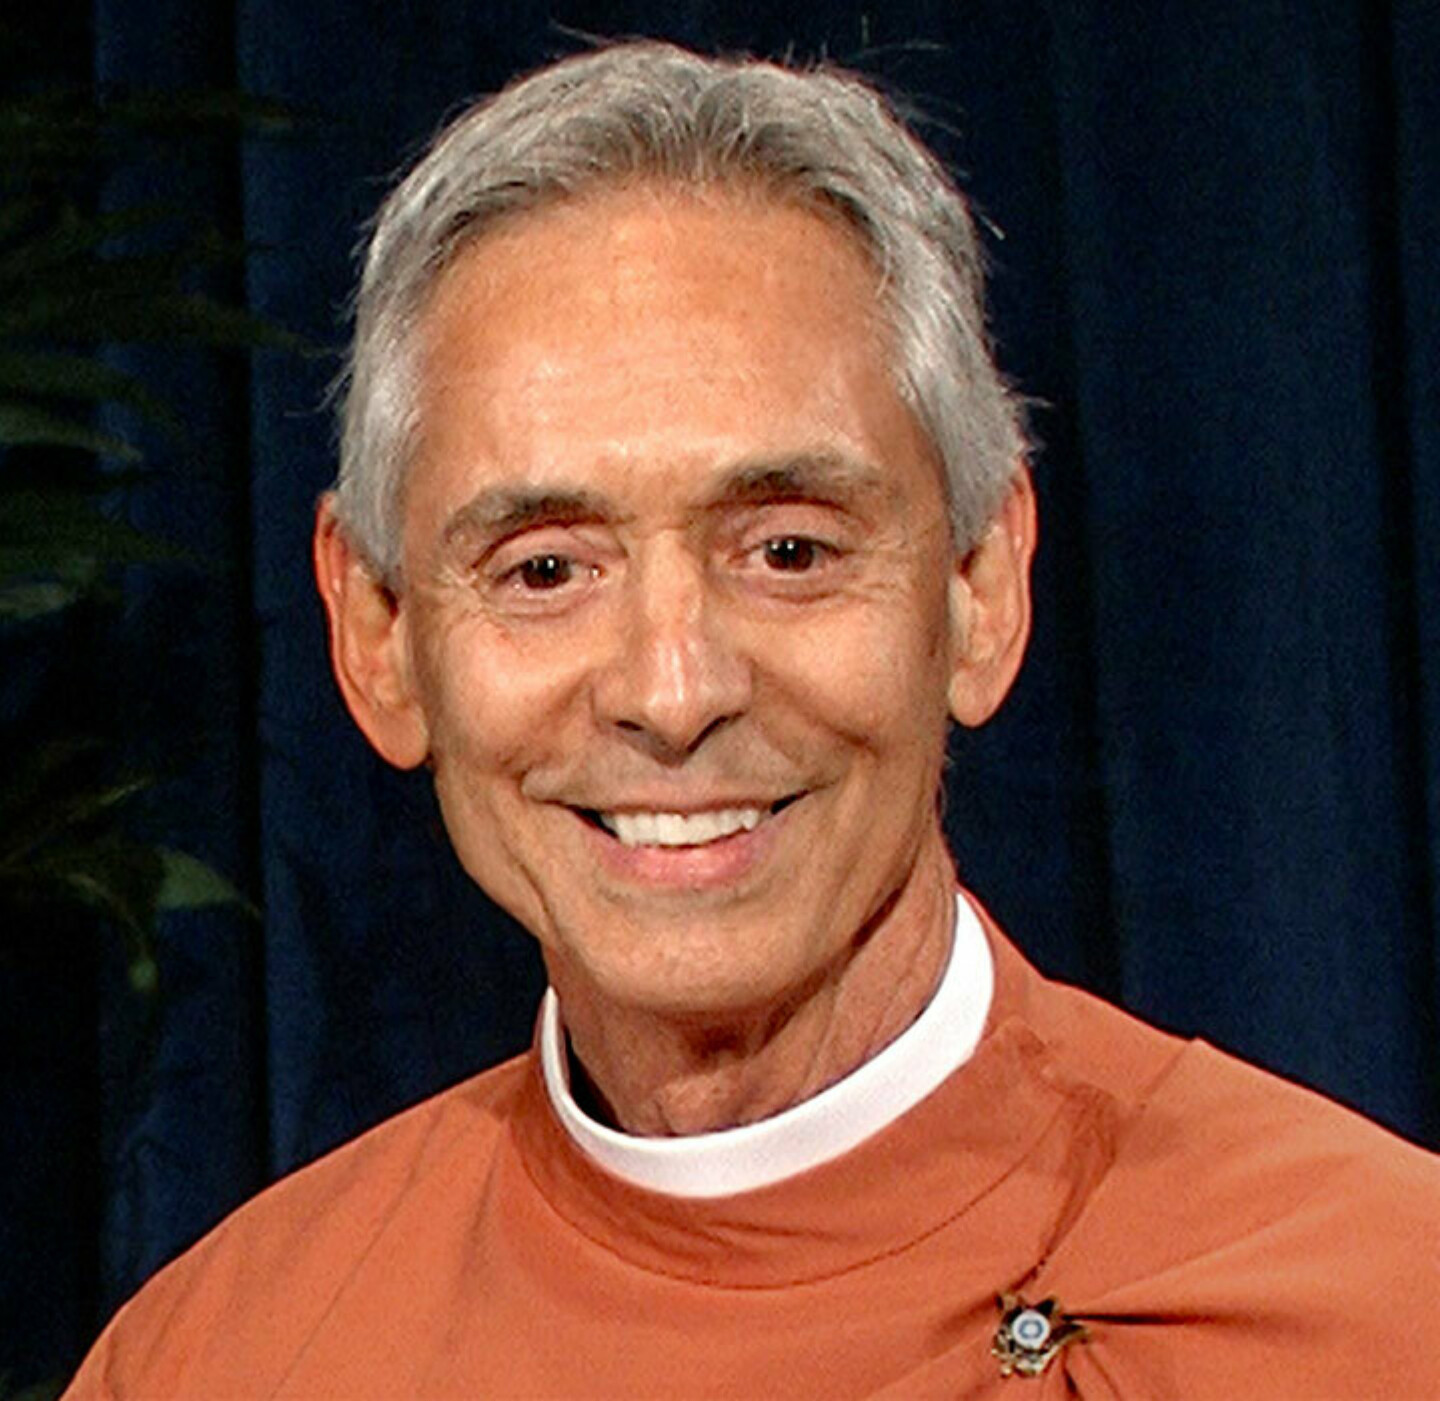 2021 4 30 Brother Sevananda The Cosmic Mystery Of Karma For Website